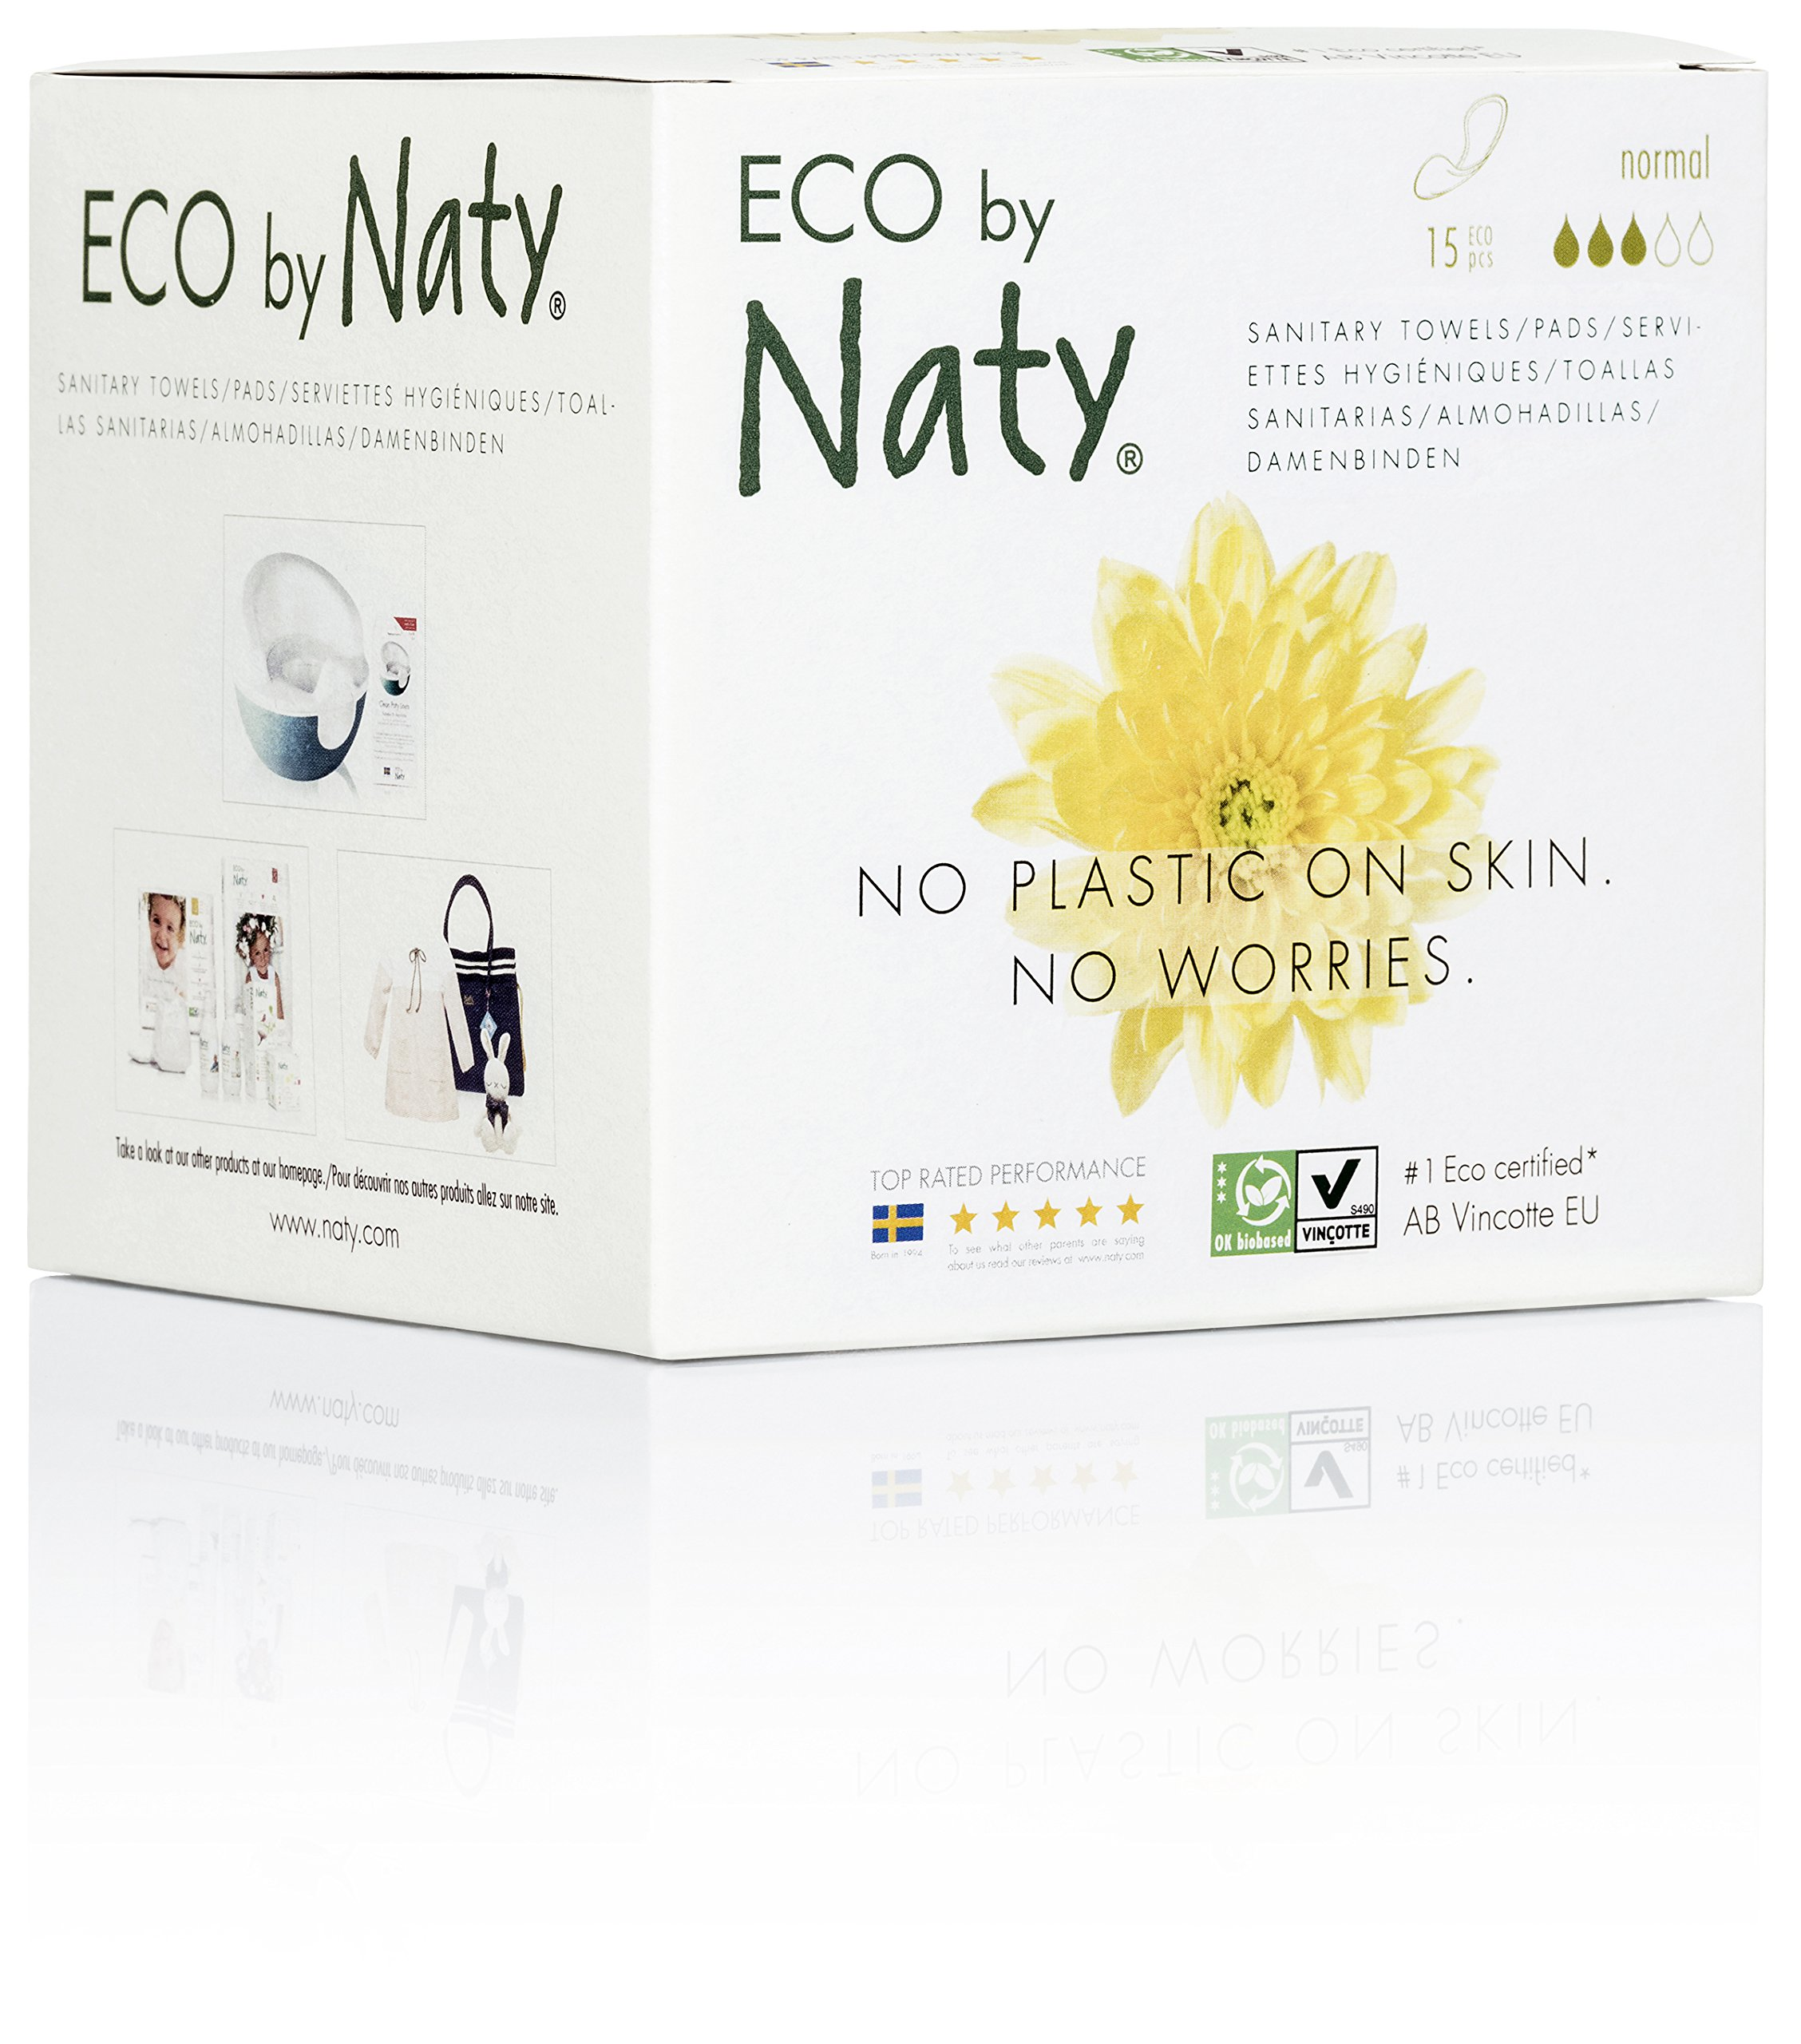 Eco by Naty Certified Thin Sanitary Pads, Normal, 15 Pads (Chemical-Free